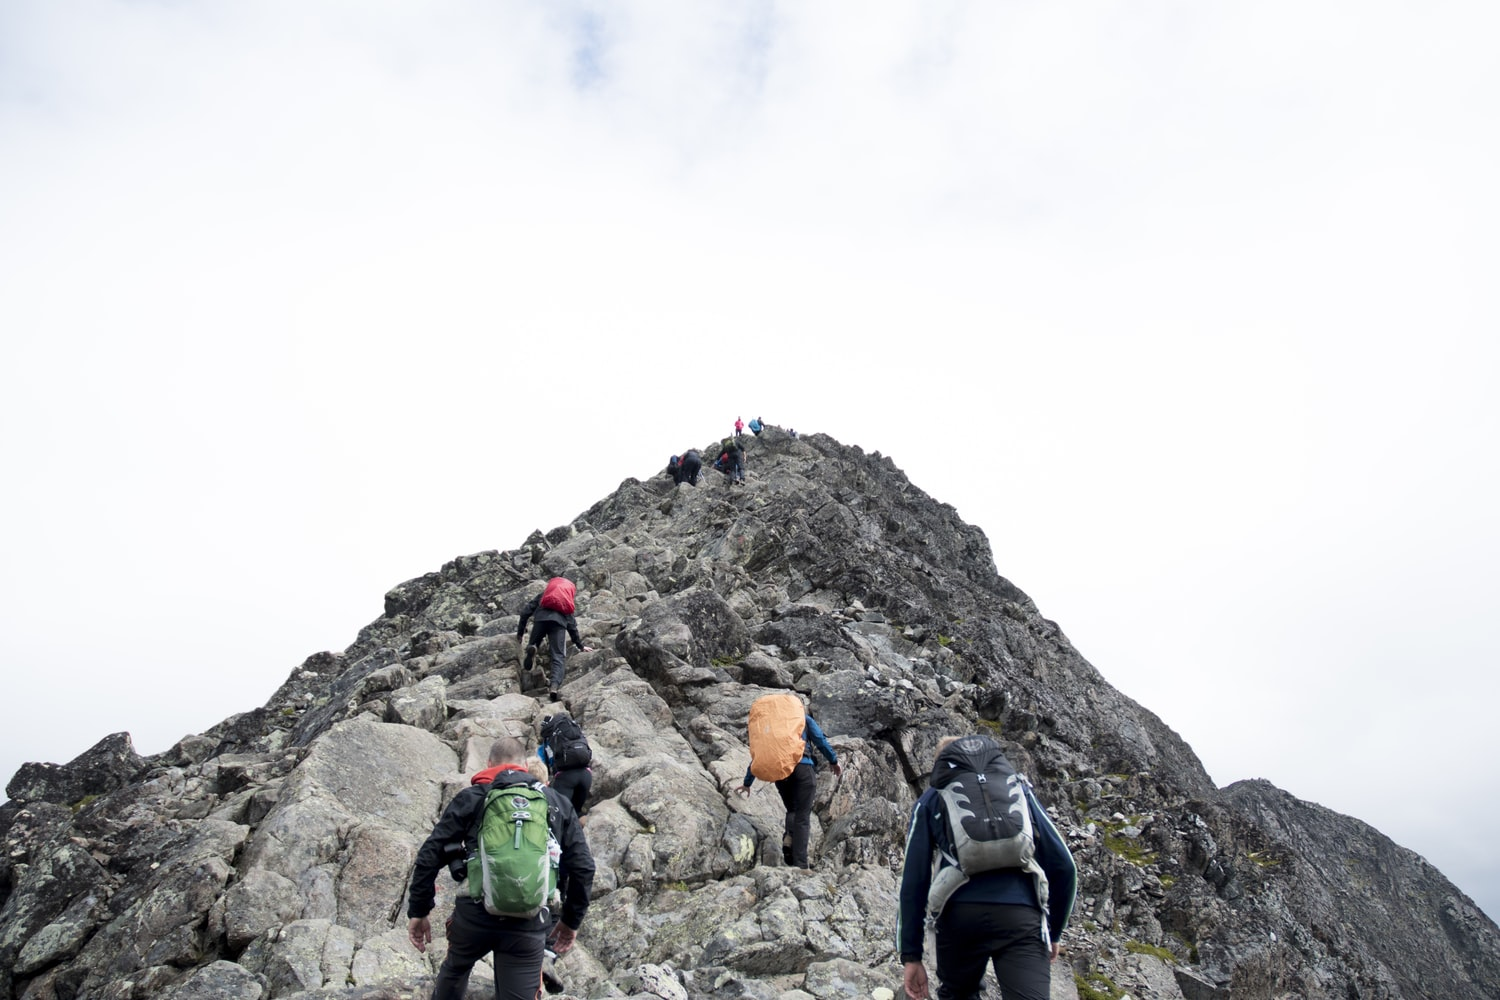 Group of hikers are climbing the rock mountain while wearing their hiking gears